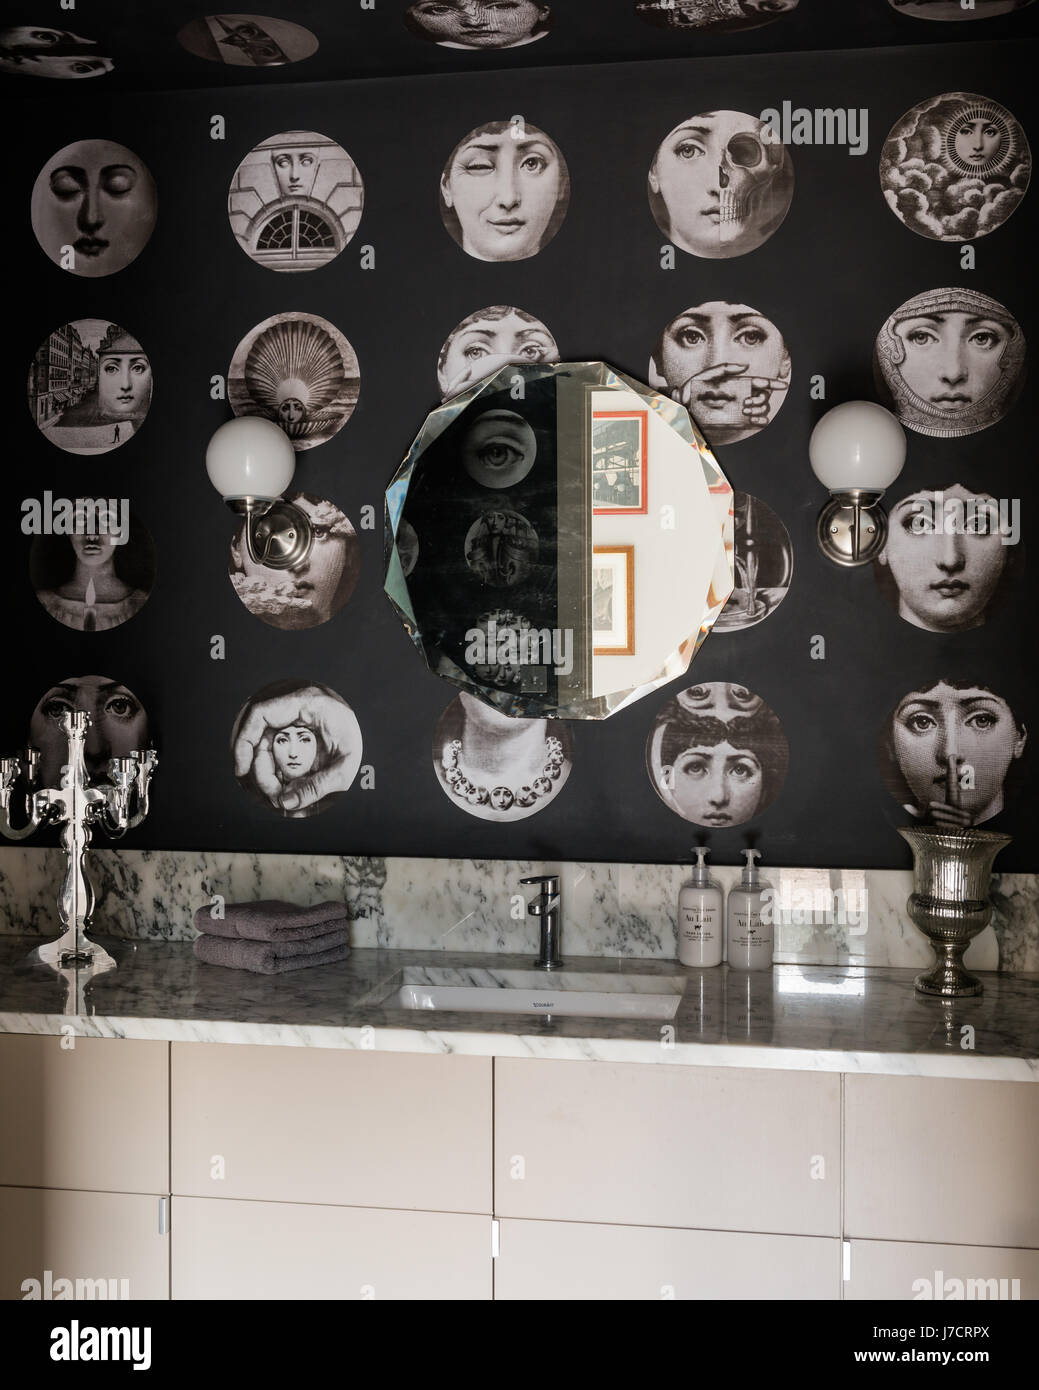 Fornasetti wallpaper in marble bathroom with vintage mirror - Stock Image